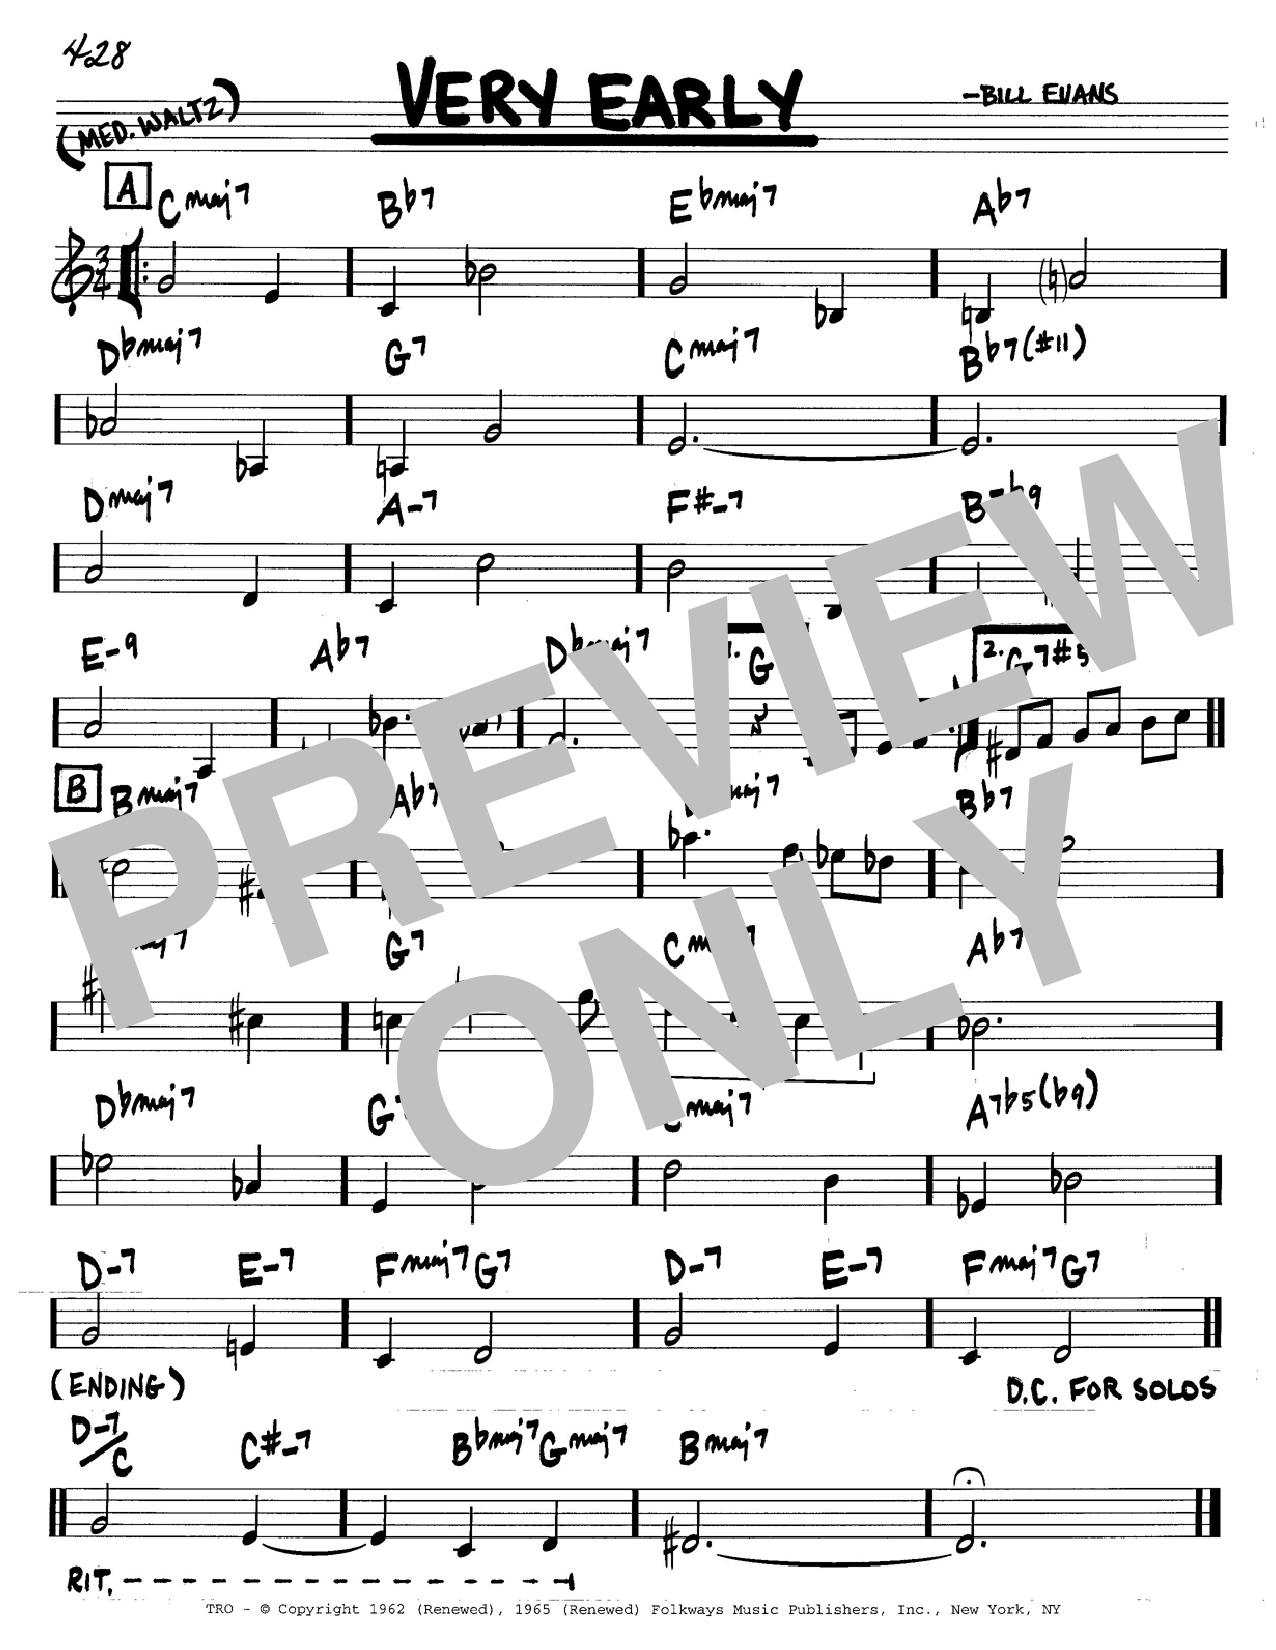 Bill Evans Very Early sheet music notes and chords. Download Printable PDF.